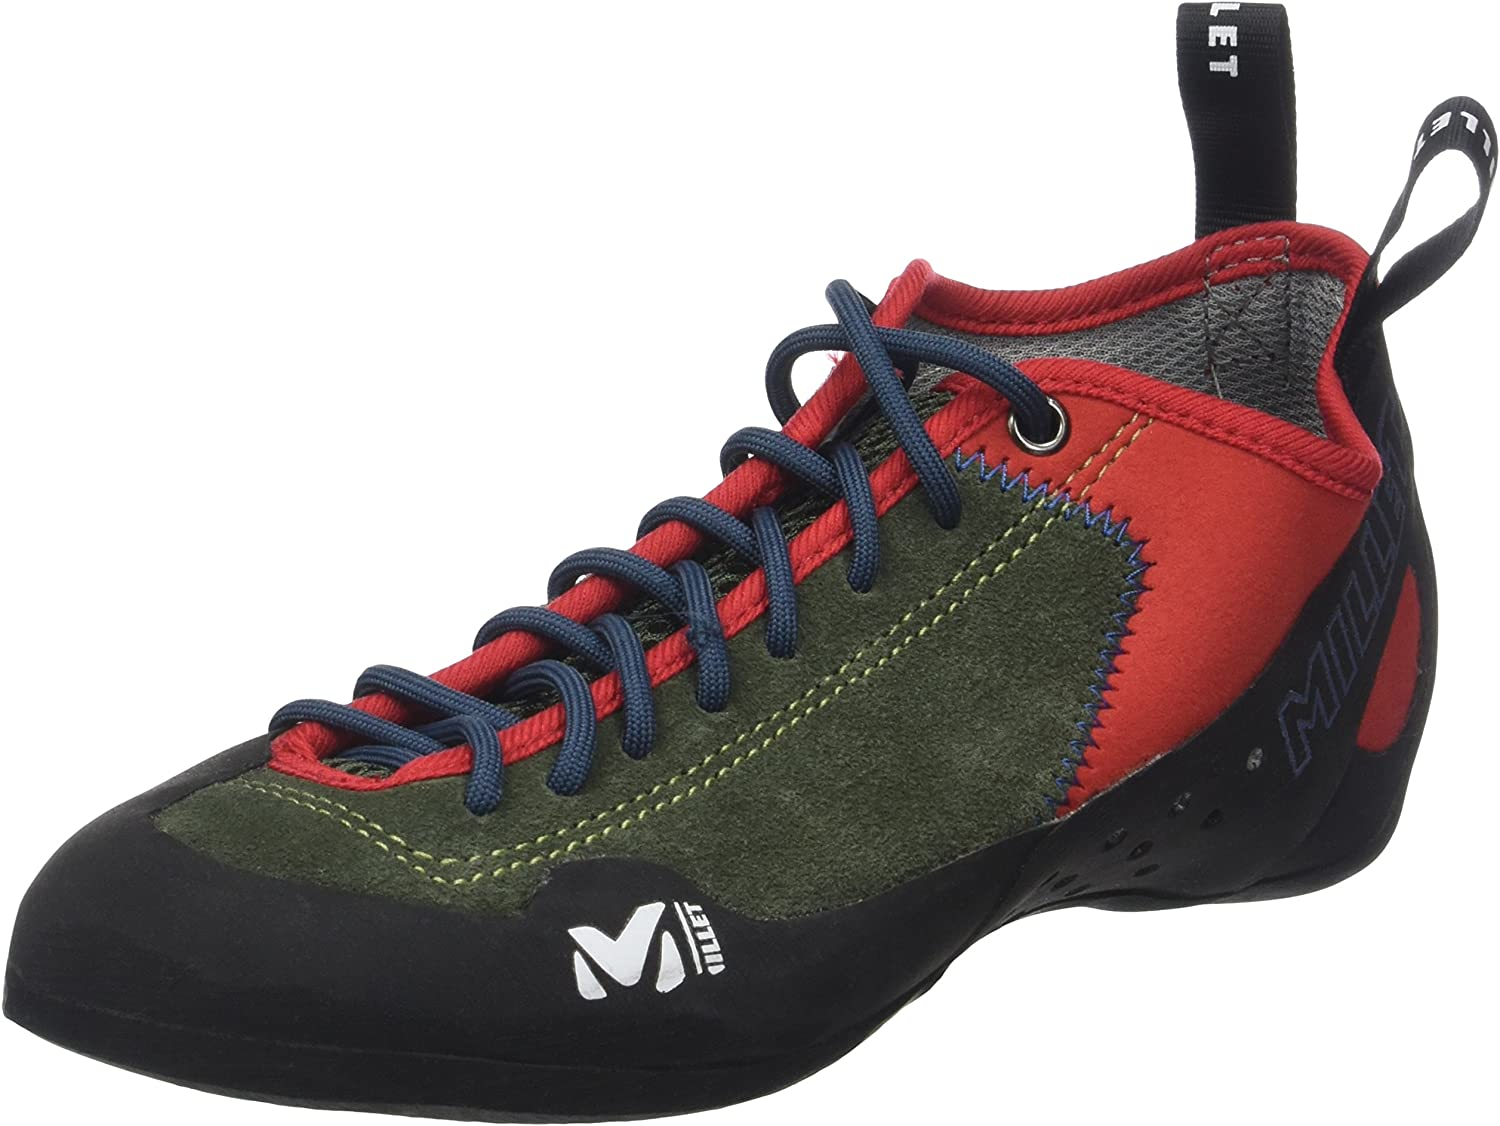 MILLET Unisex Adults' Rock Up Climbing shoes